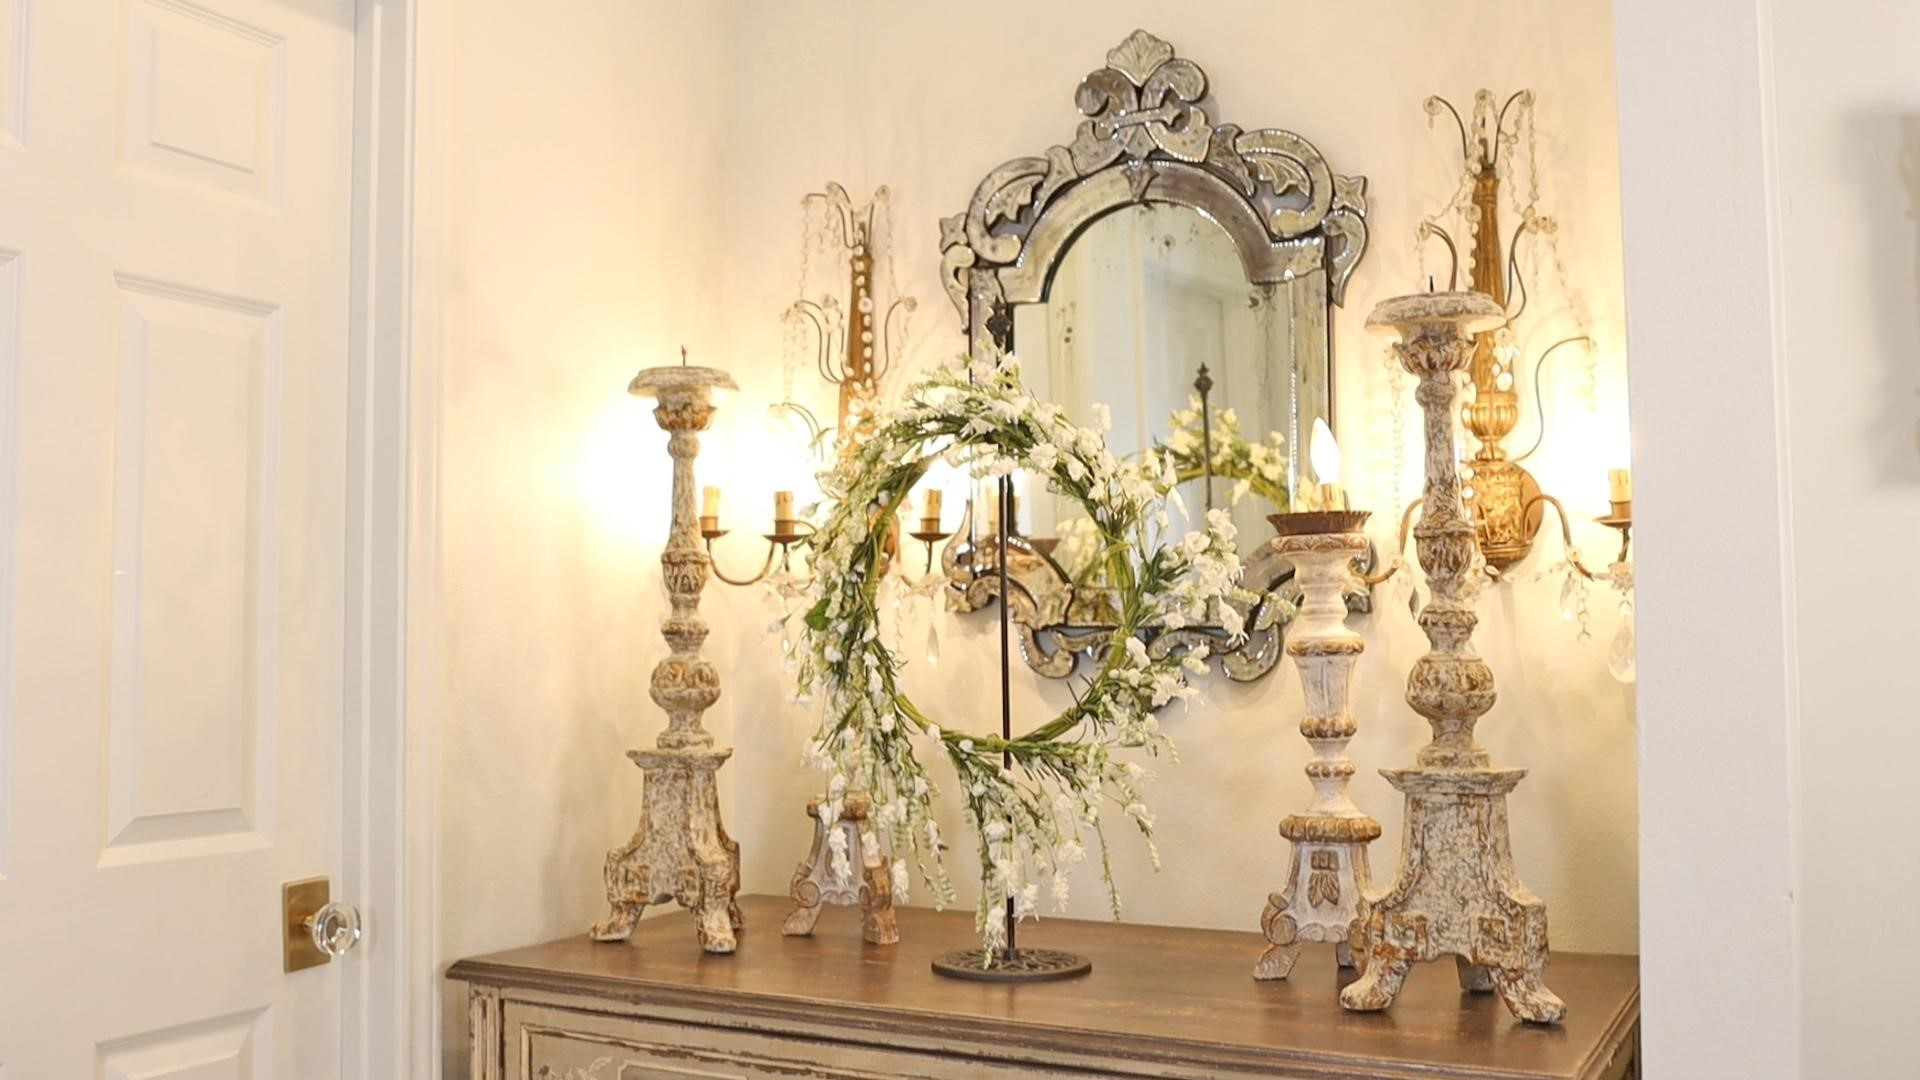 How Amitha styles her hallway with French country decor including gilt and crystal sconces, etched Venetian style glass mirror, distressed chalk painted chippy white and gold candle holders atop a chest of drawers.